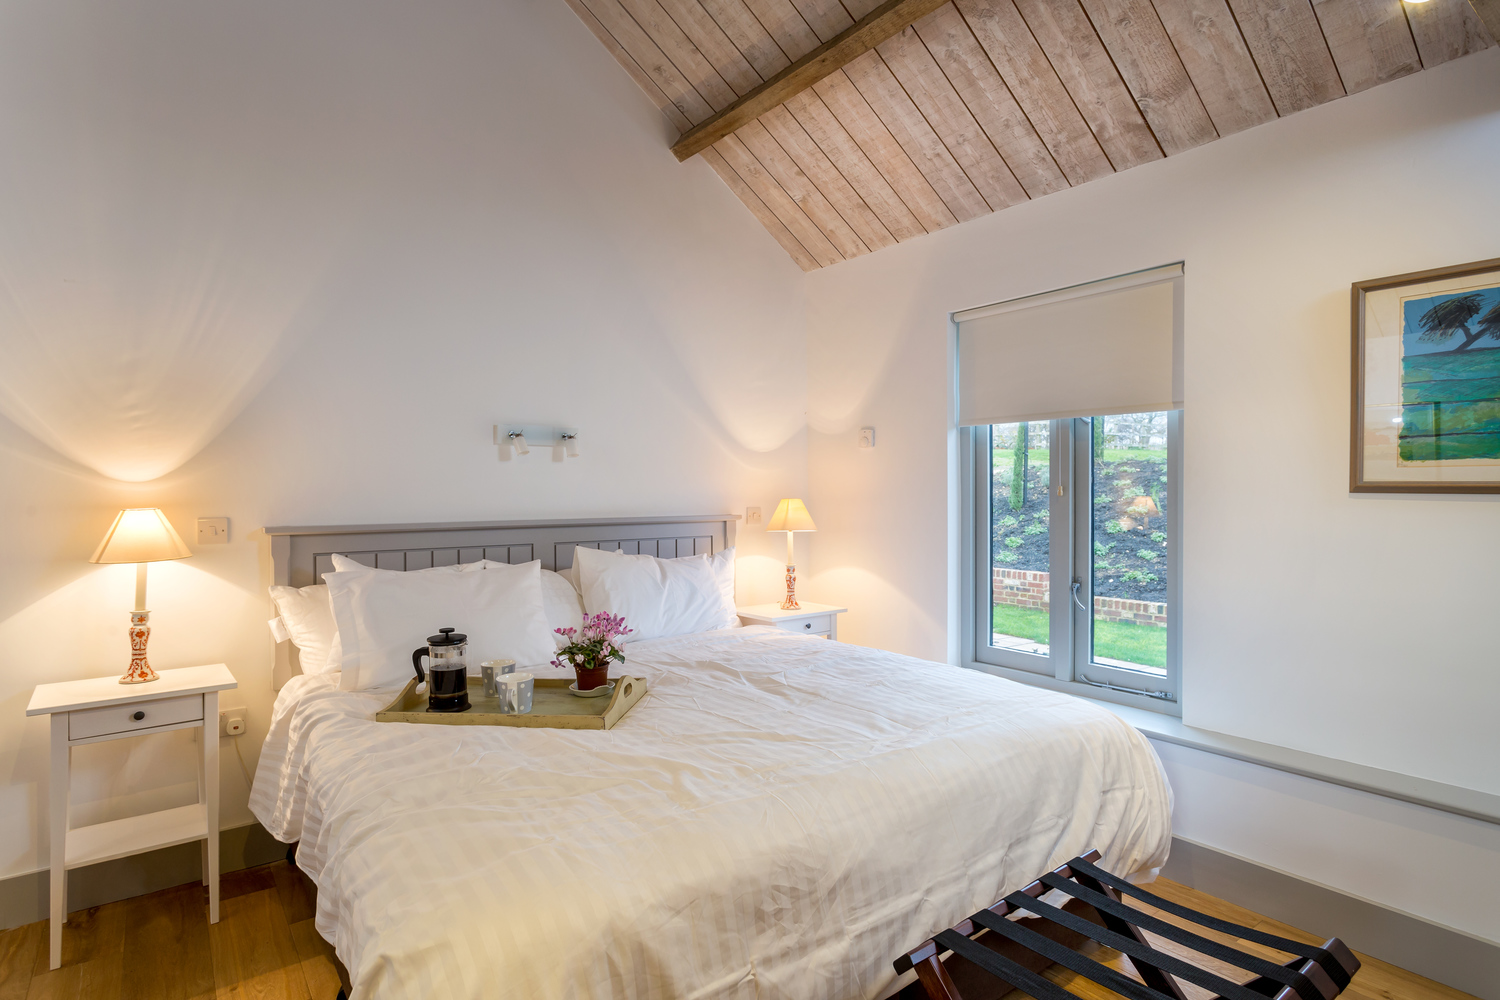 Copy of The Vineyard - Lordship's Barns - bedroom